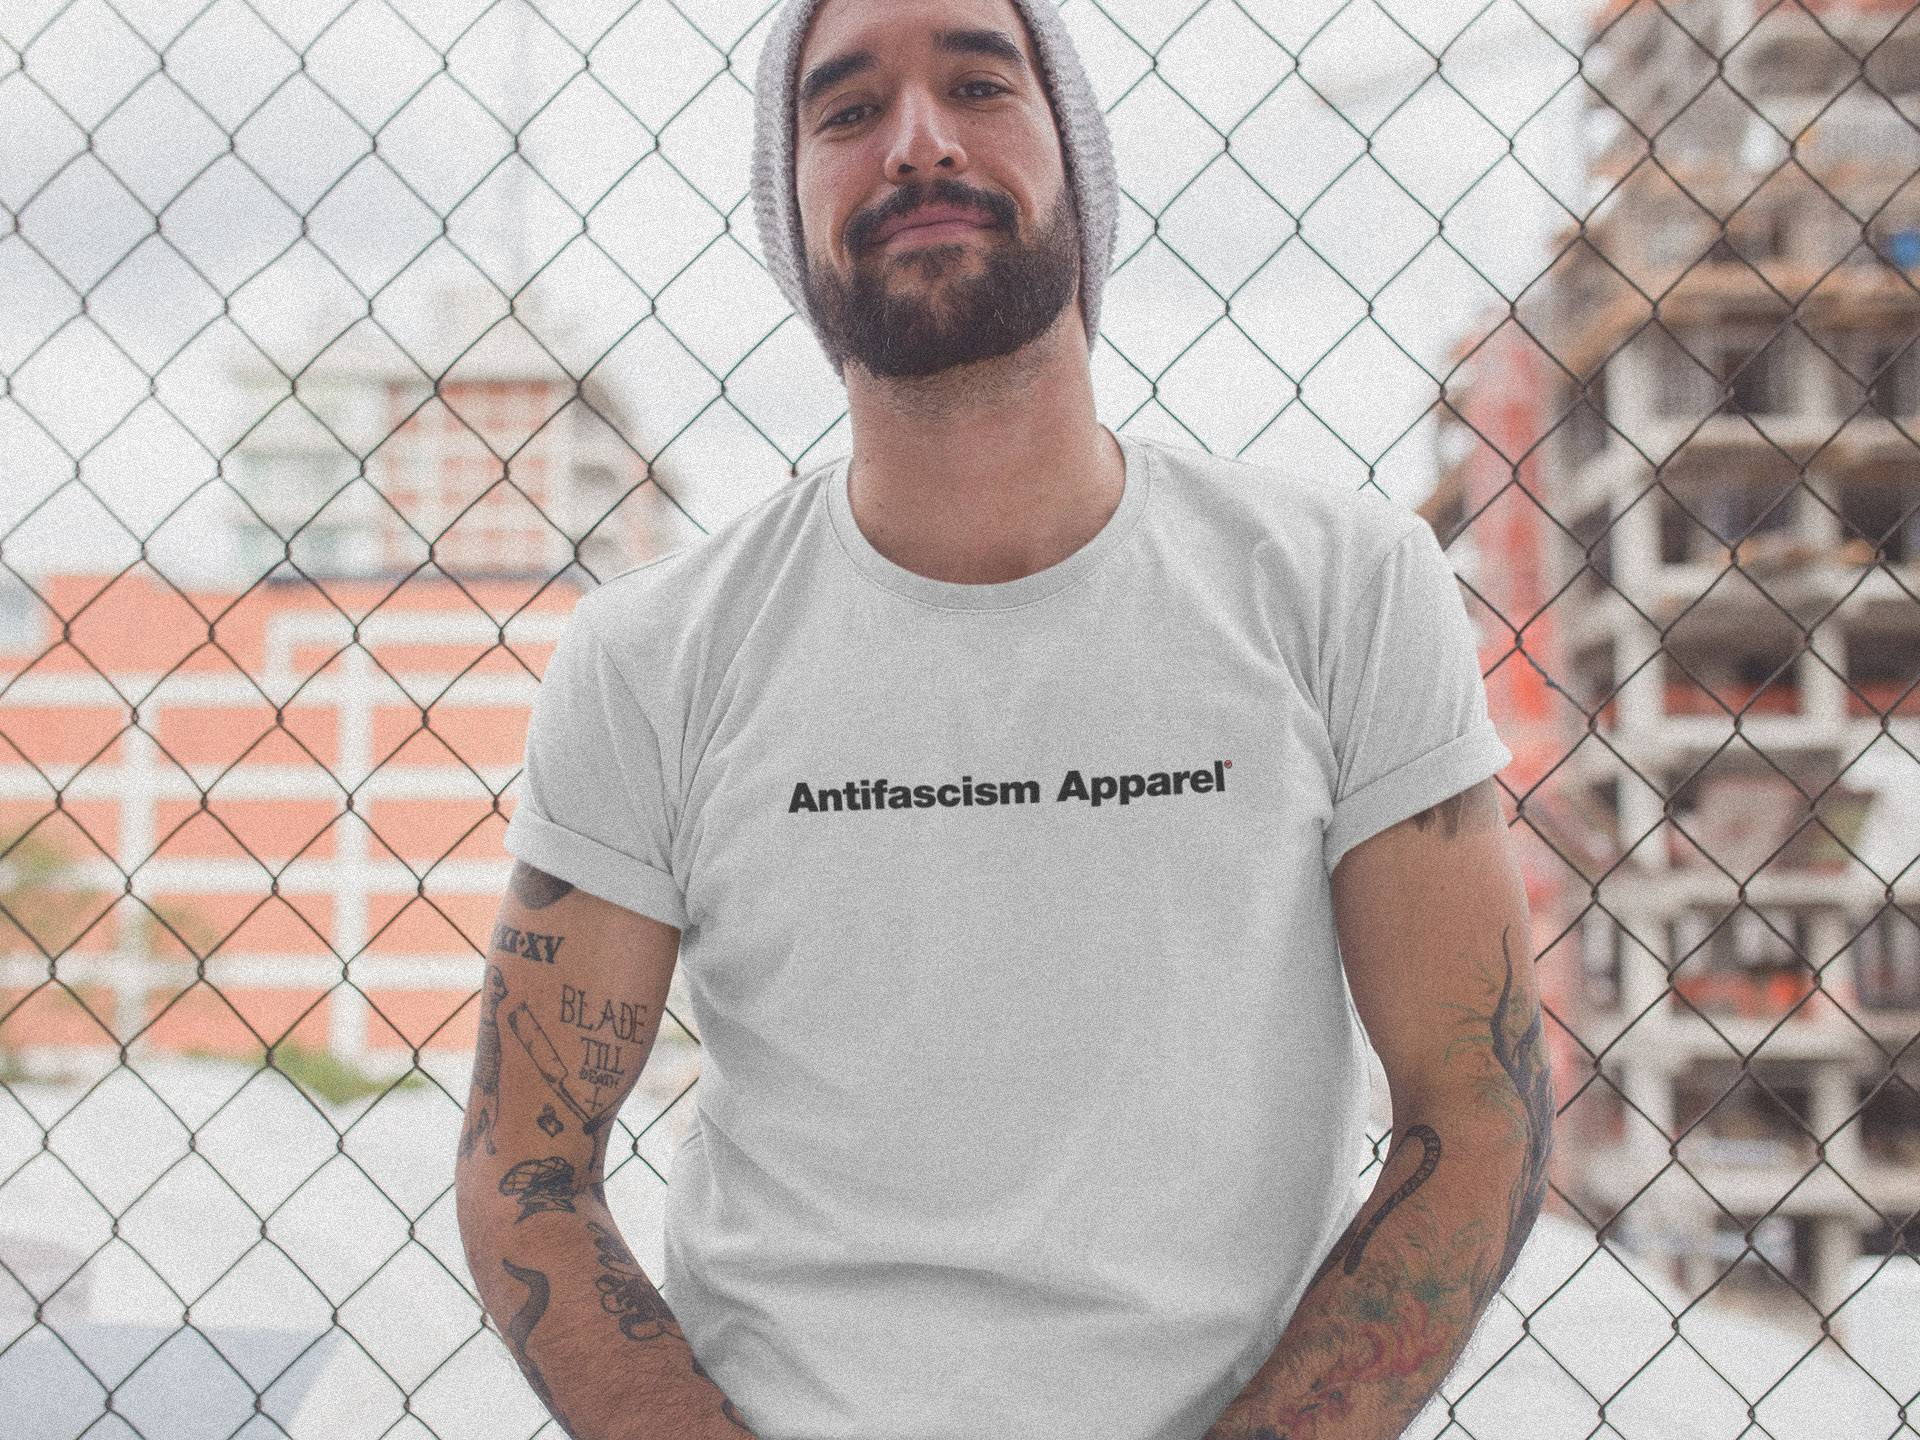 Antifascism Apparel - T-Shirt